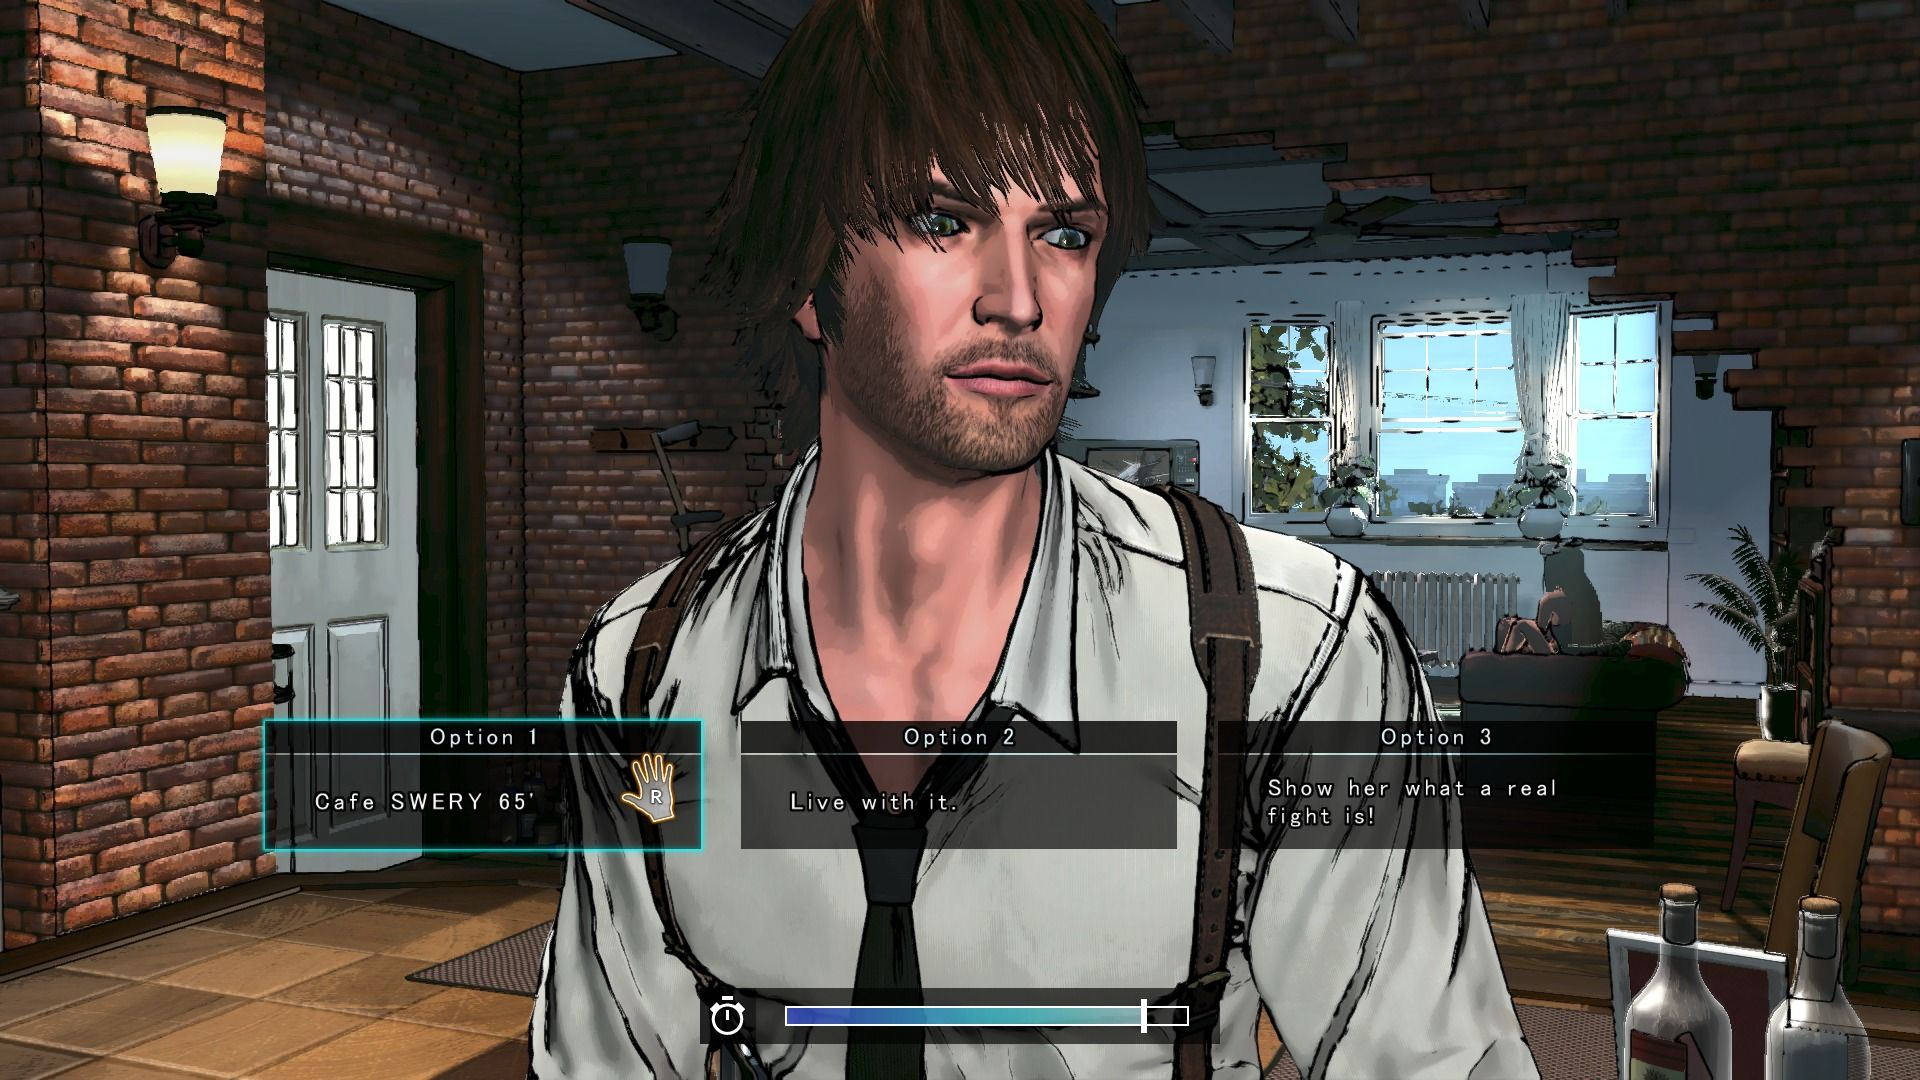 793783-d4-dark-dreams-don-t-die-windows-screenshot-dialogue-choices